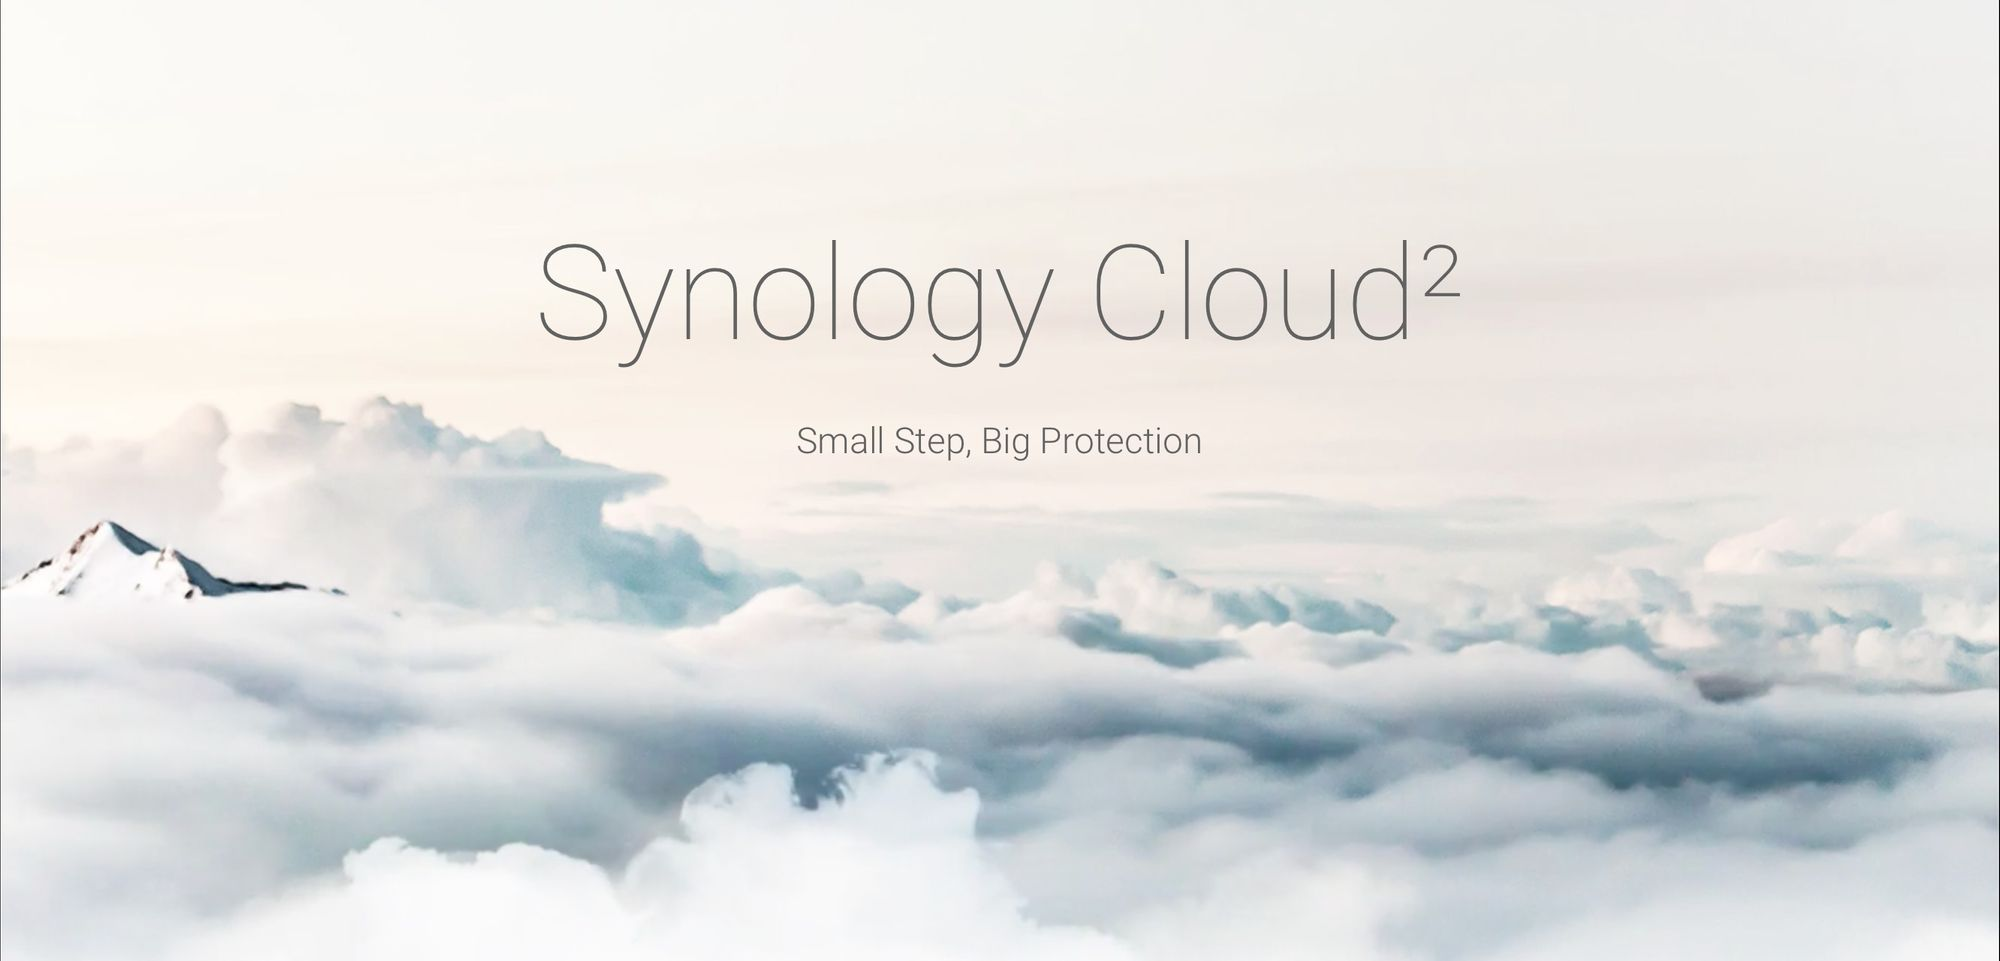 2-step verification changes coming for Synology C2 accounts